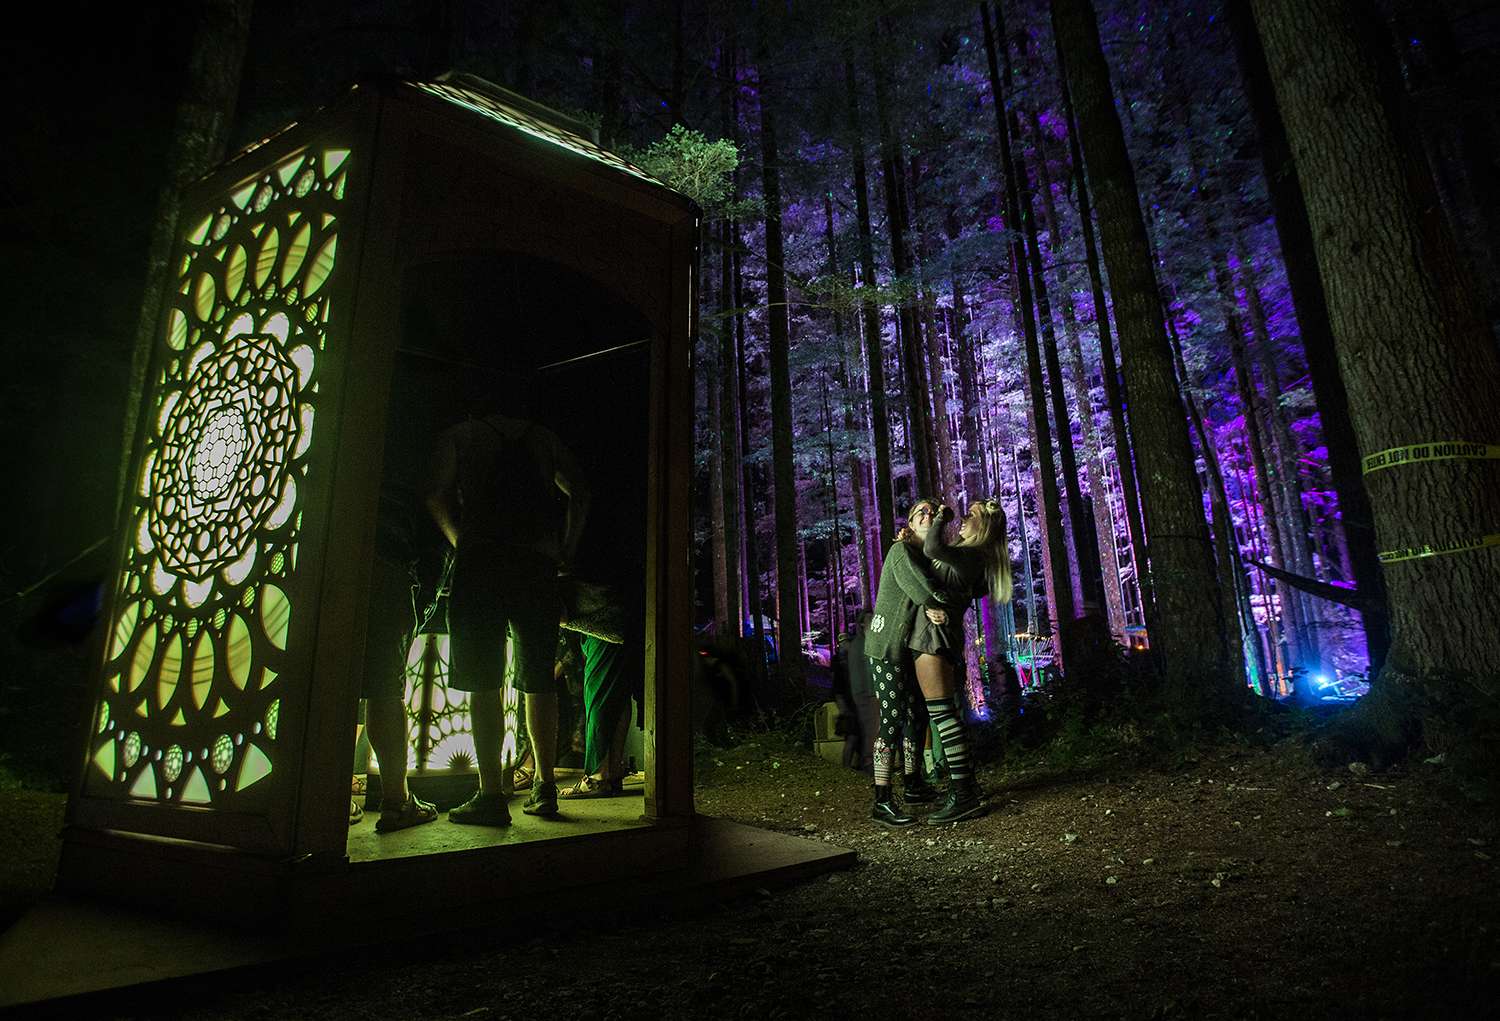 Two friends hug each other as they explore the Axis Mundi art installation at the Summer Meltdown on Thursday, Aug. 2, 2018 in Darrington, Wa.